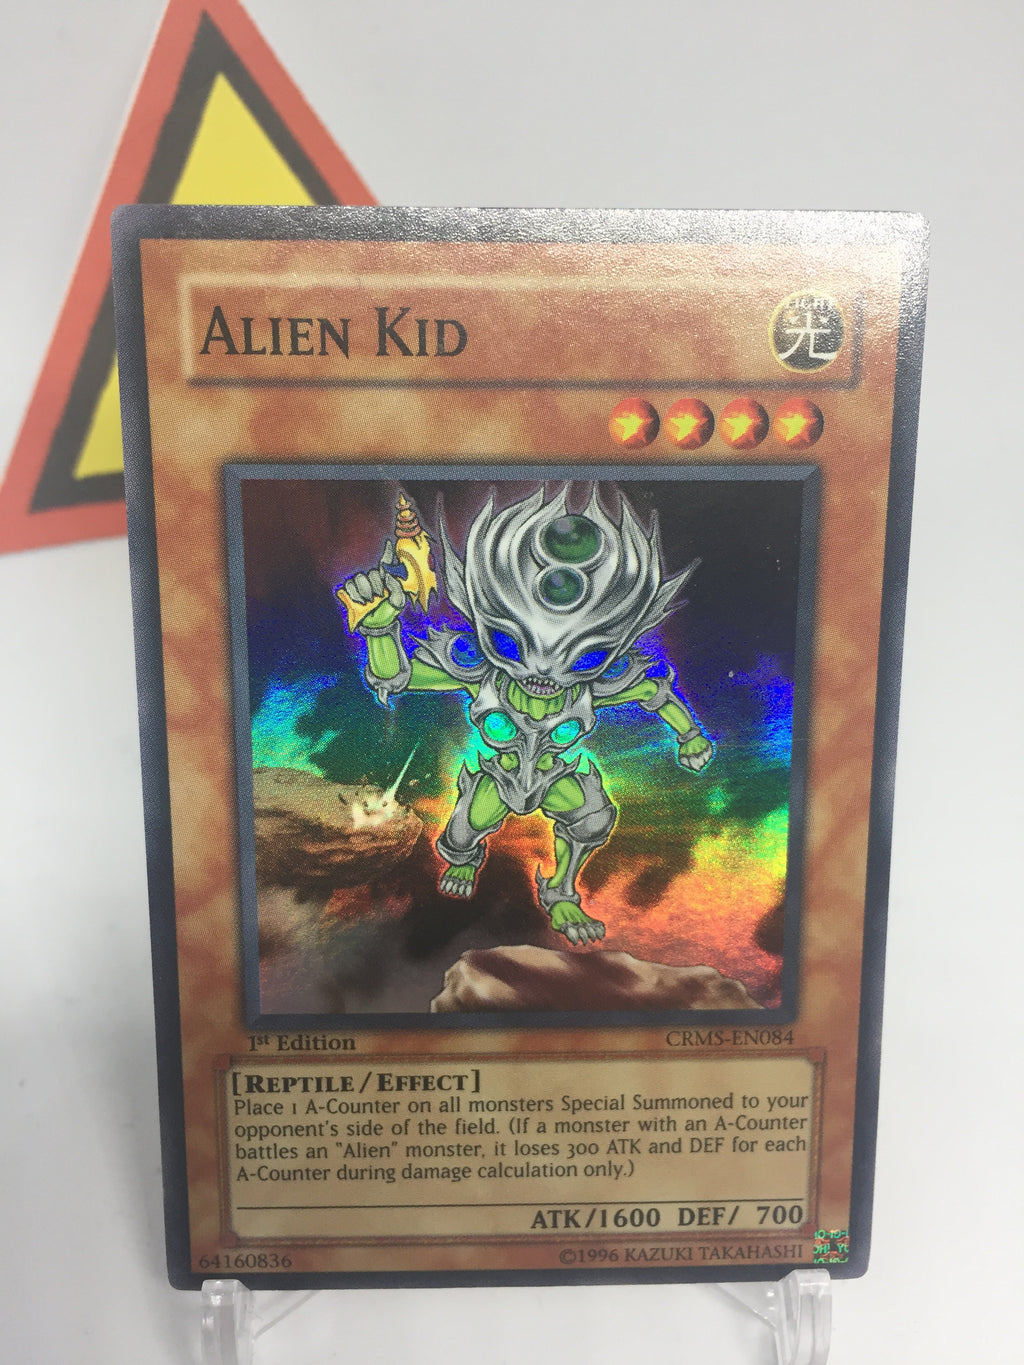 Alien Kid - Super - CRMS-EN084 - 1st